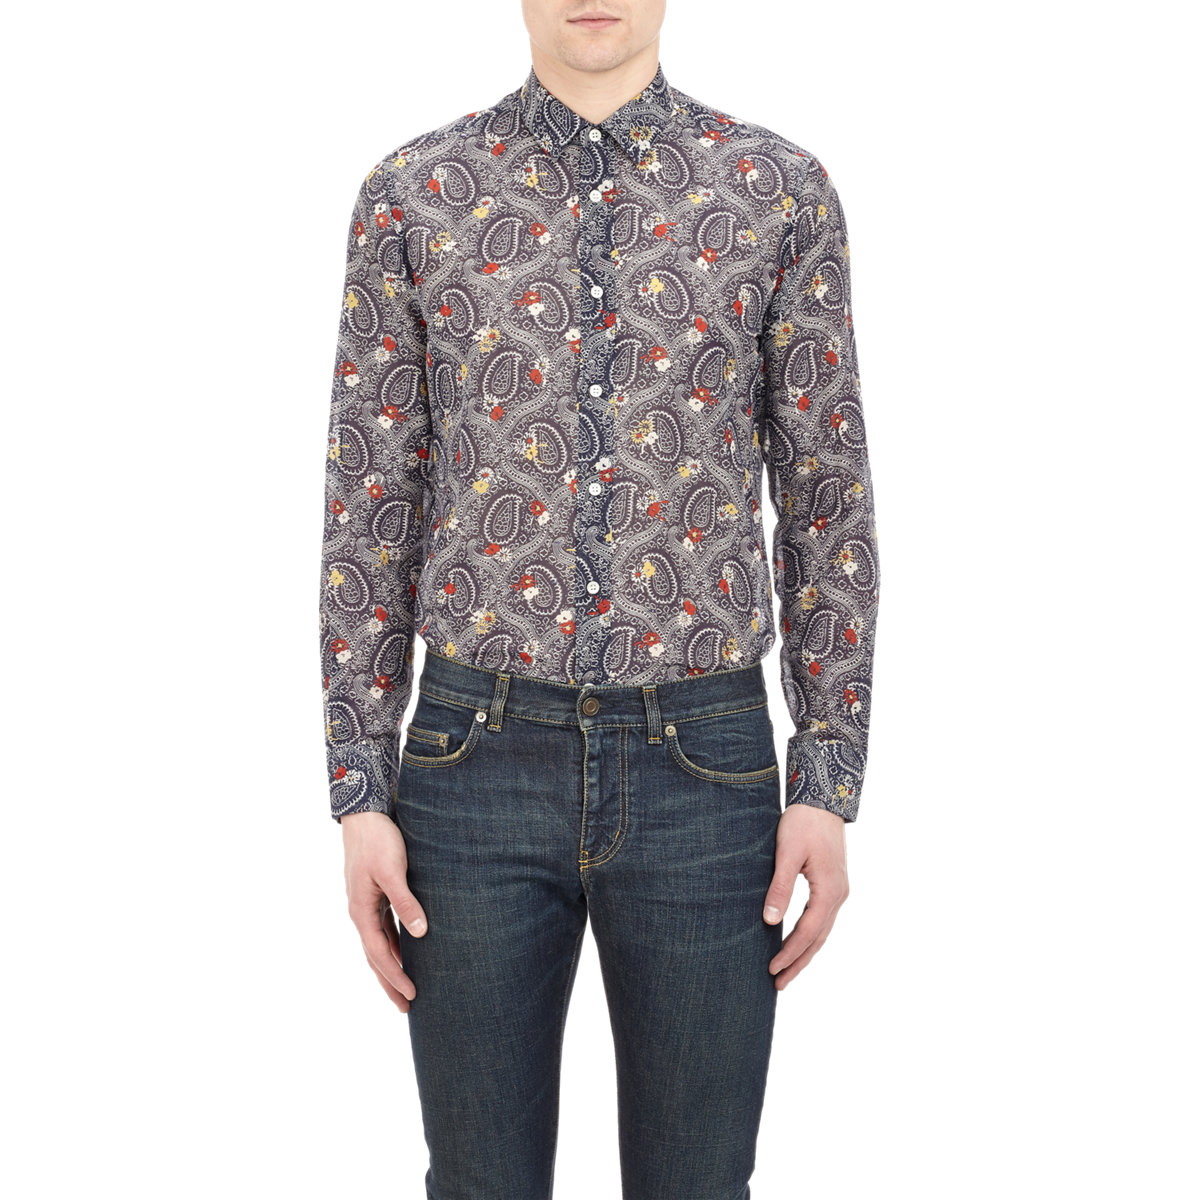 428a5749a5f1b saint-laurent-blue-floral-and-paisley-shirt-product-0-998302487-normal.jpeg